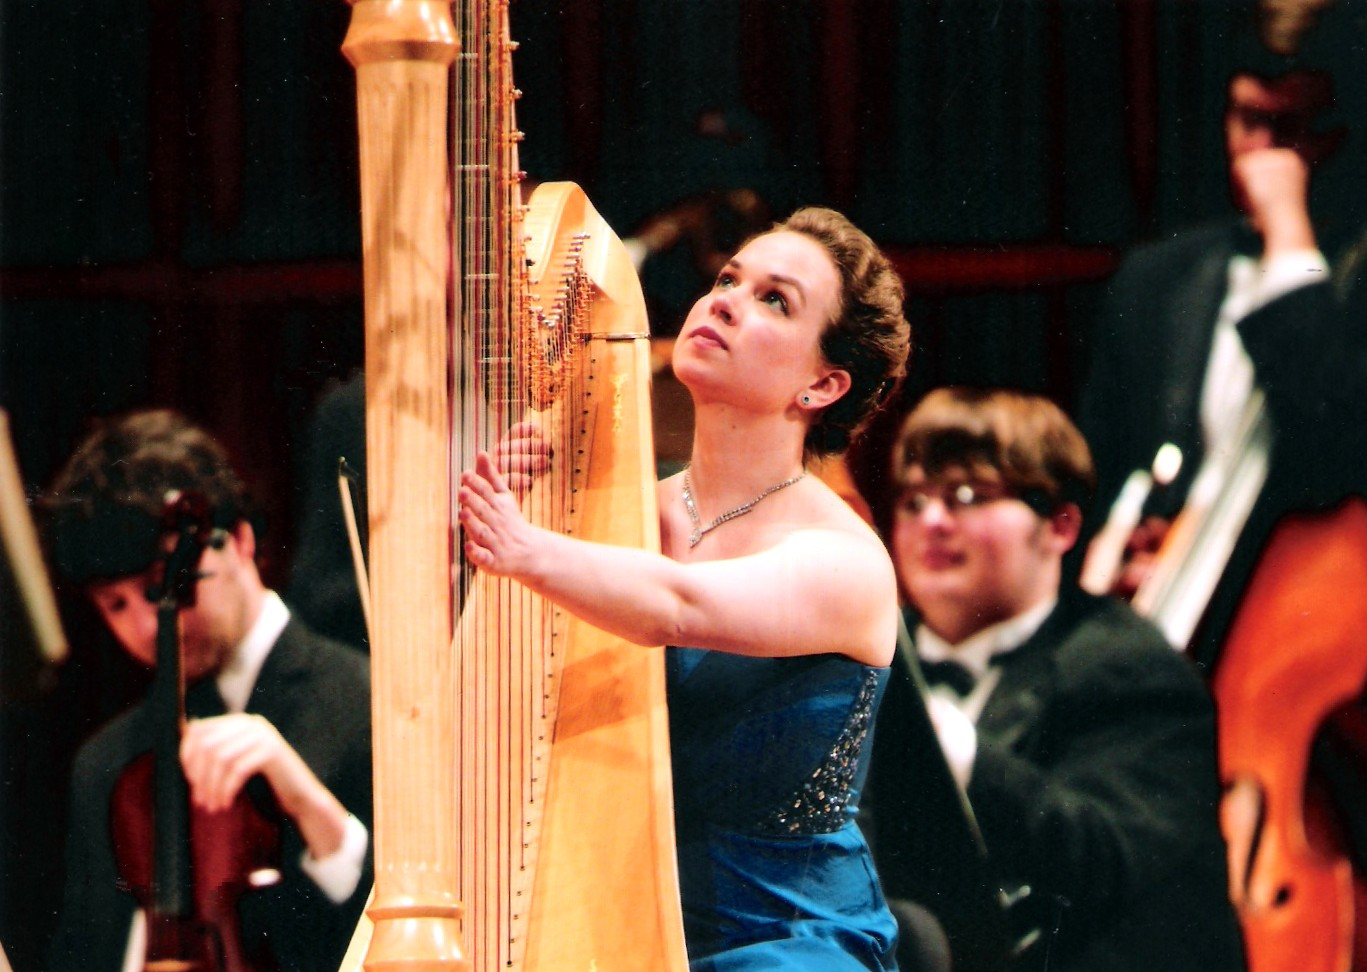 Concerto performance with Ball State University Symphony Orchestra 2012